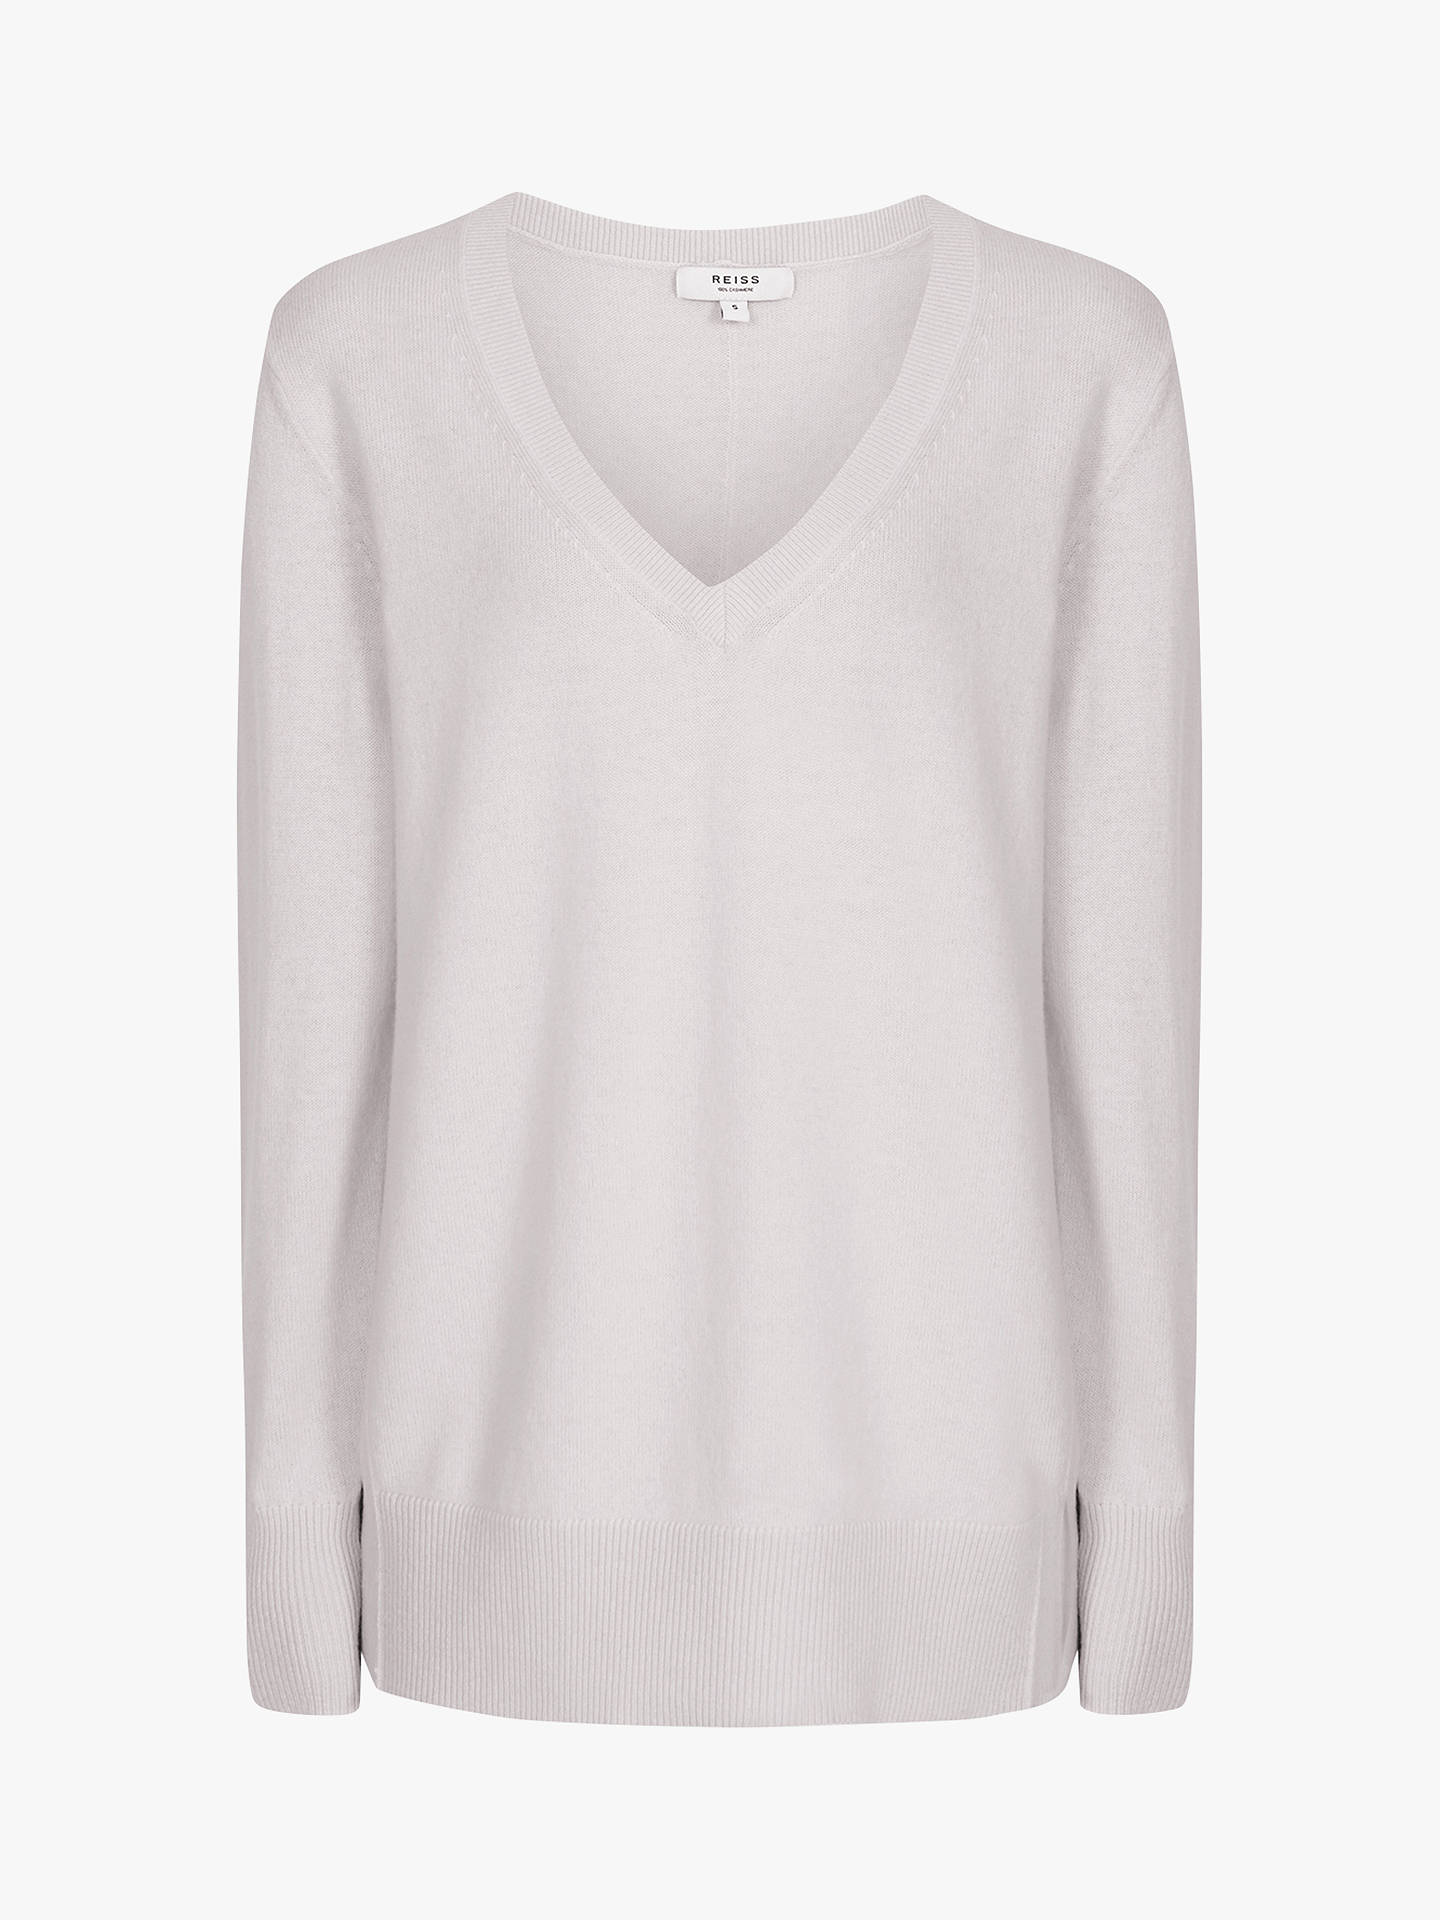 Buy Reiss Luna Cashmere V-Neck Jumper, Grey, L Online at johnlewis.com